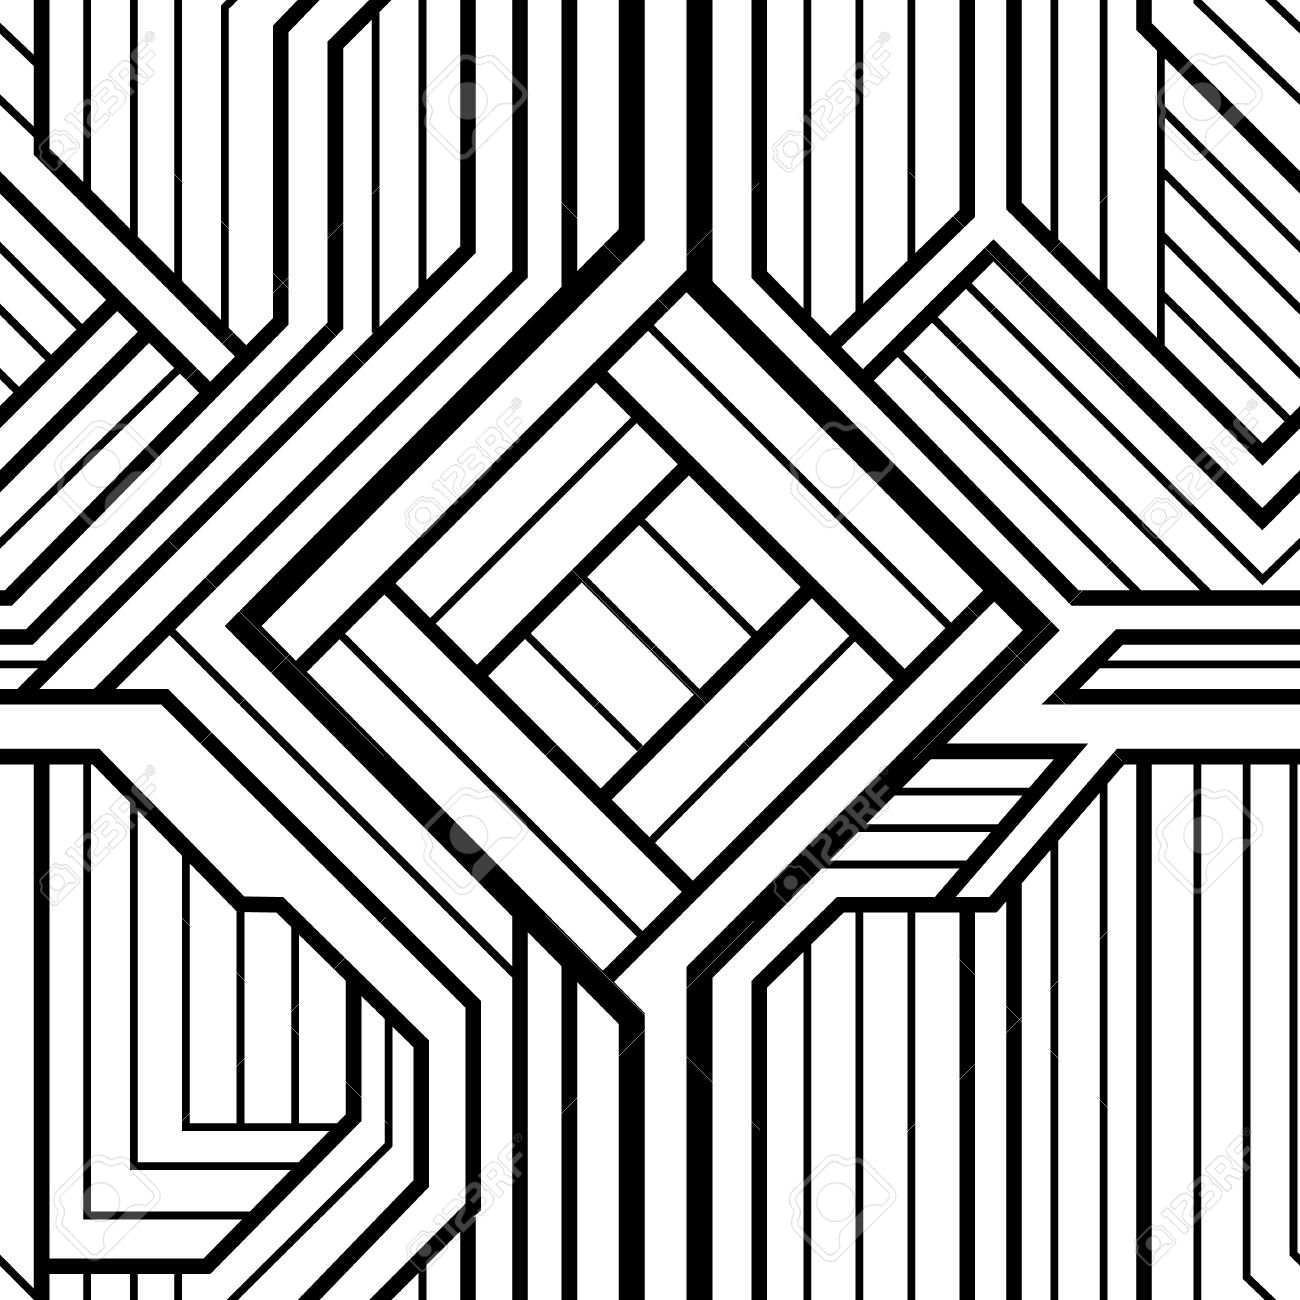 Black And White Pictures Of Art Deco Designs And Motifs